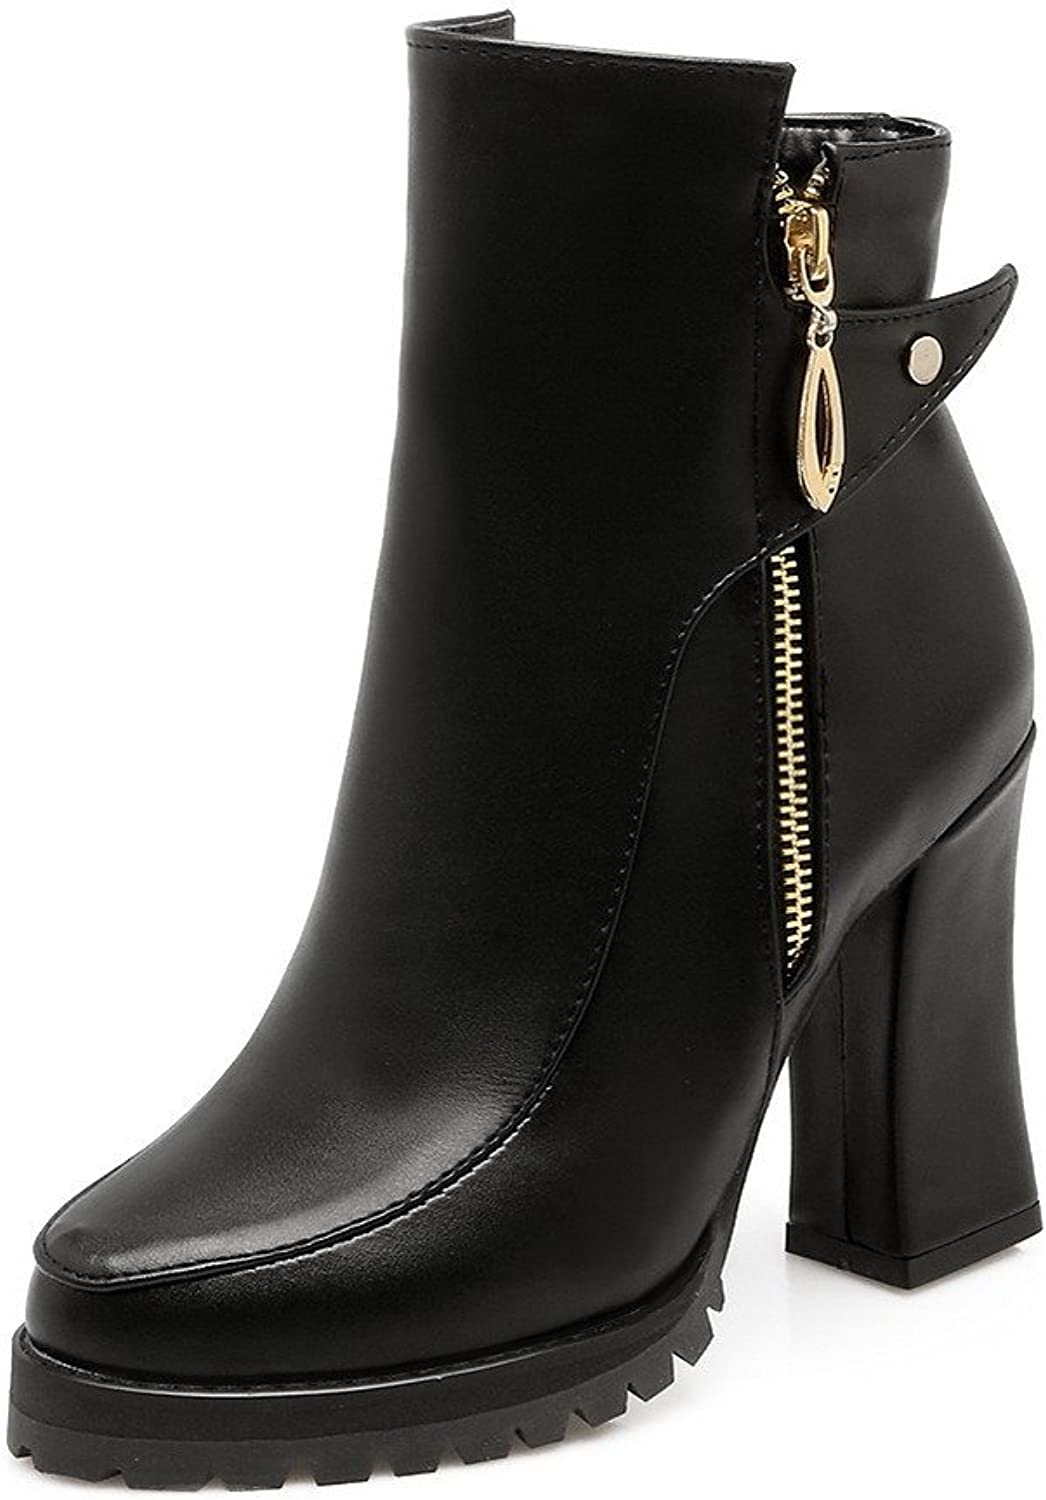 WeenFashion Women's Solid PU High-Heels Zipper Closed Round Toe Boots